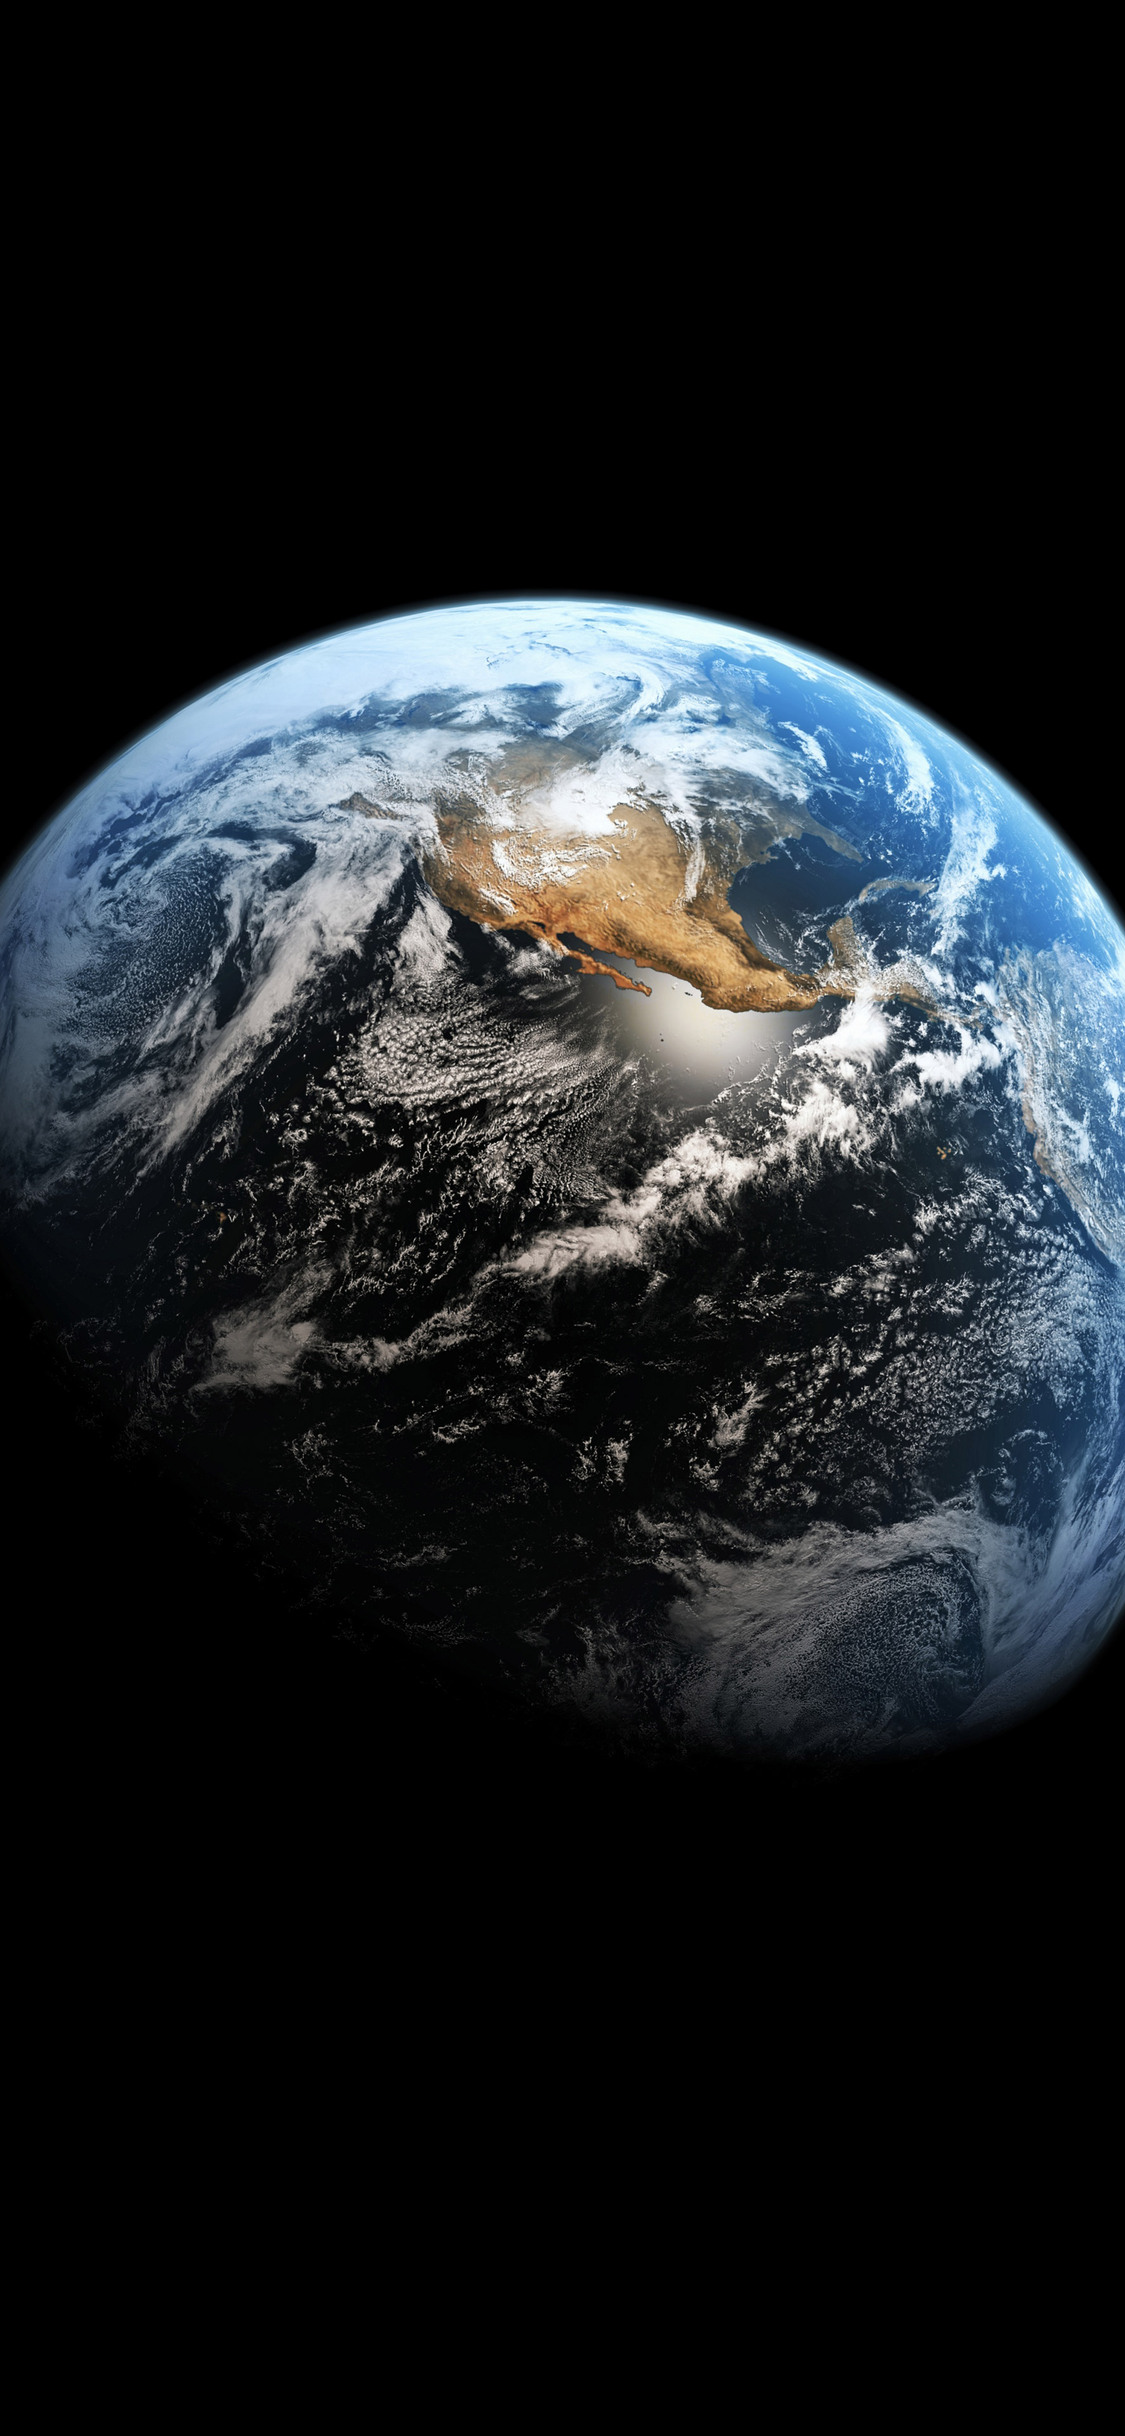 1125x2436 Earth Planet 4k Iphone Xs Iphone 10 Iphone X Hd 4k